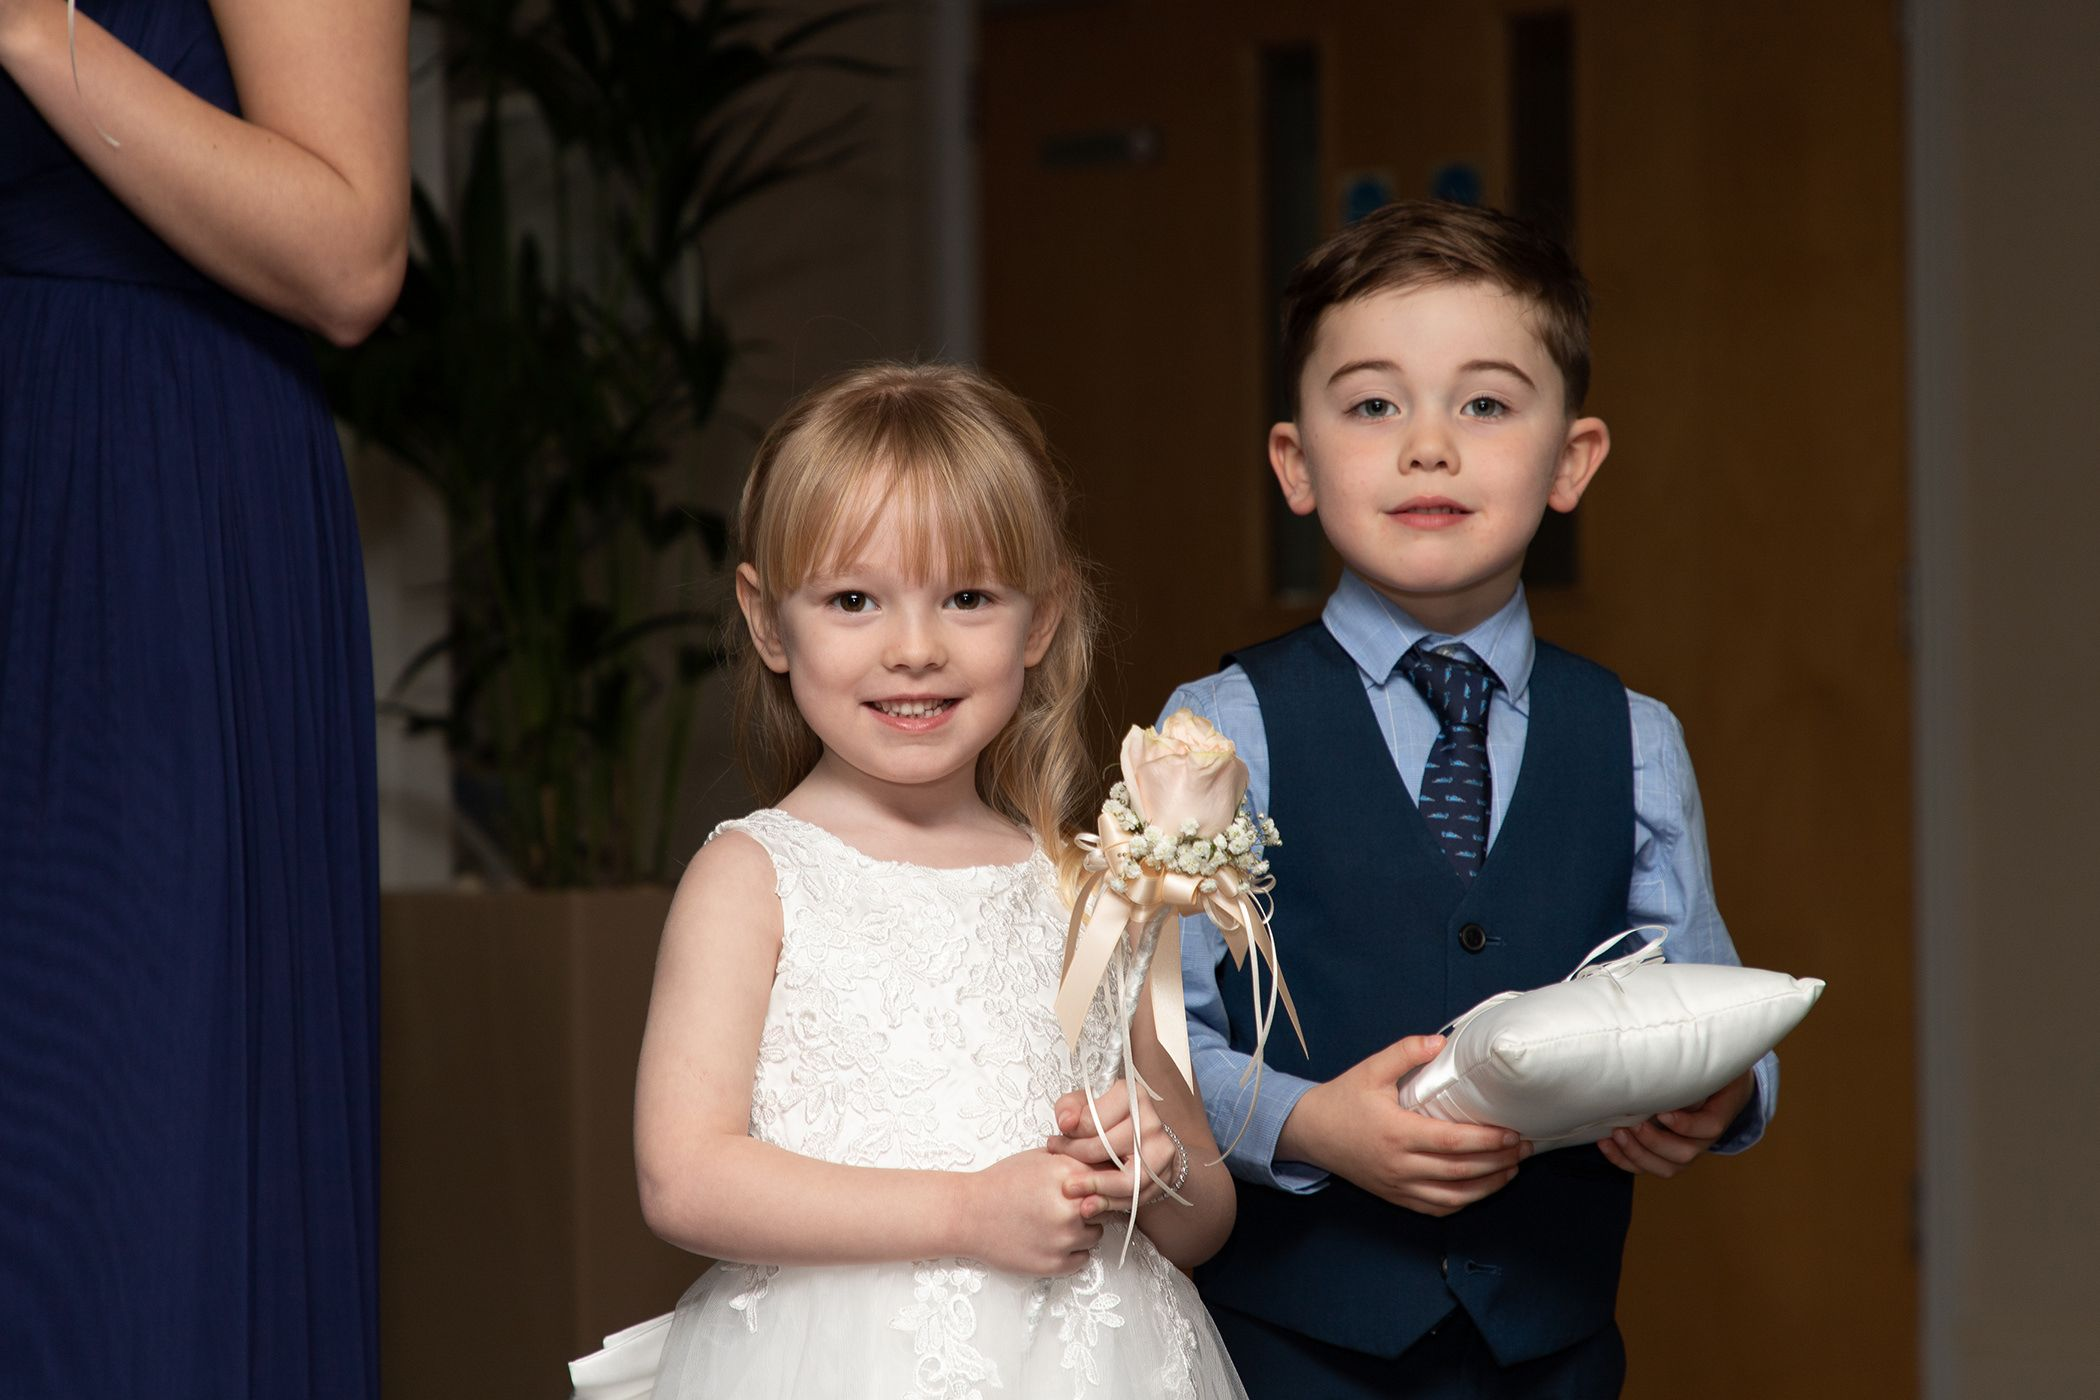 the flower girl and pageboy